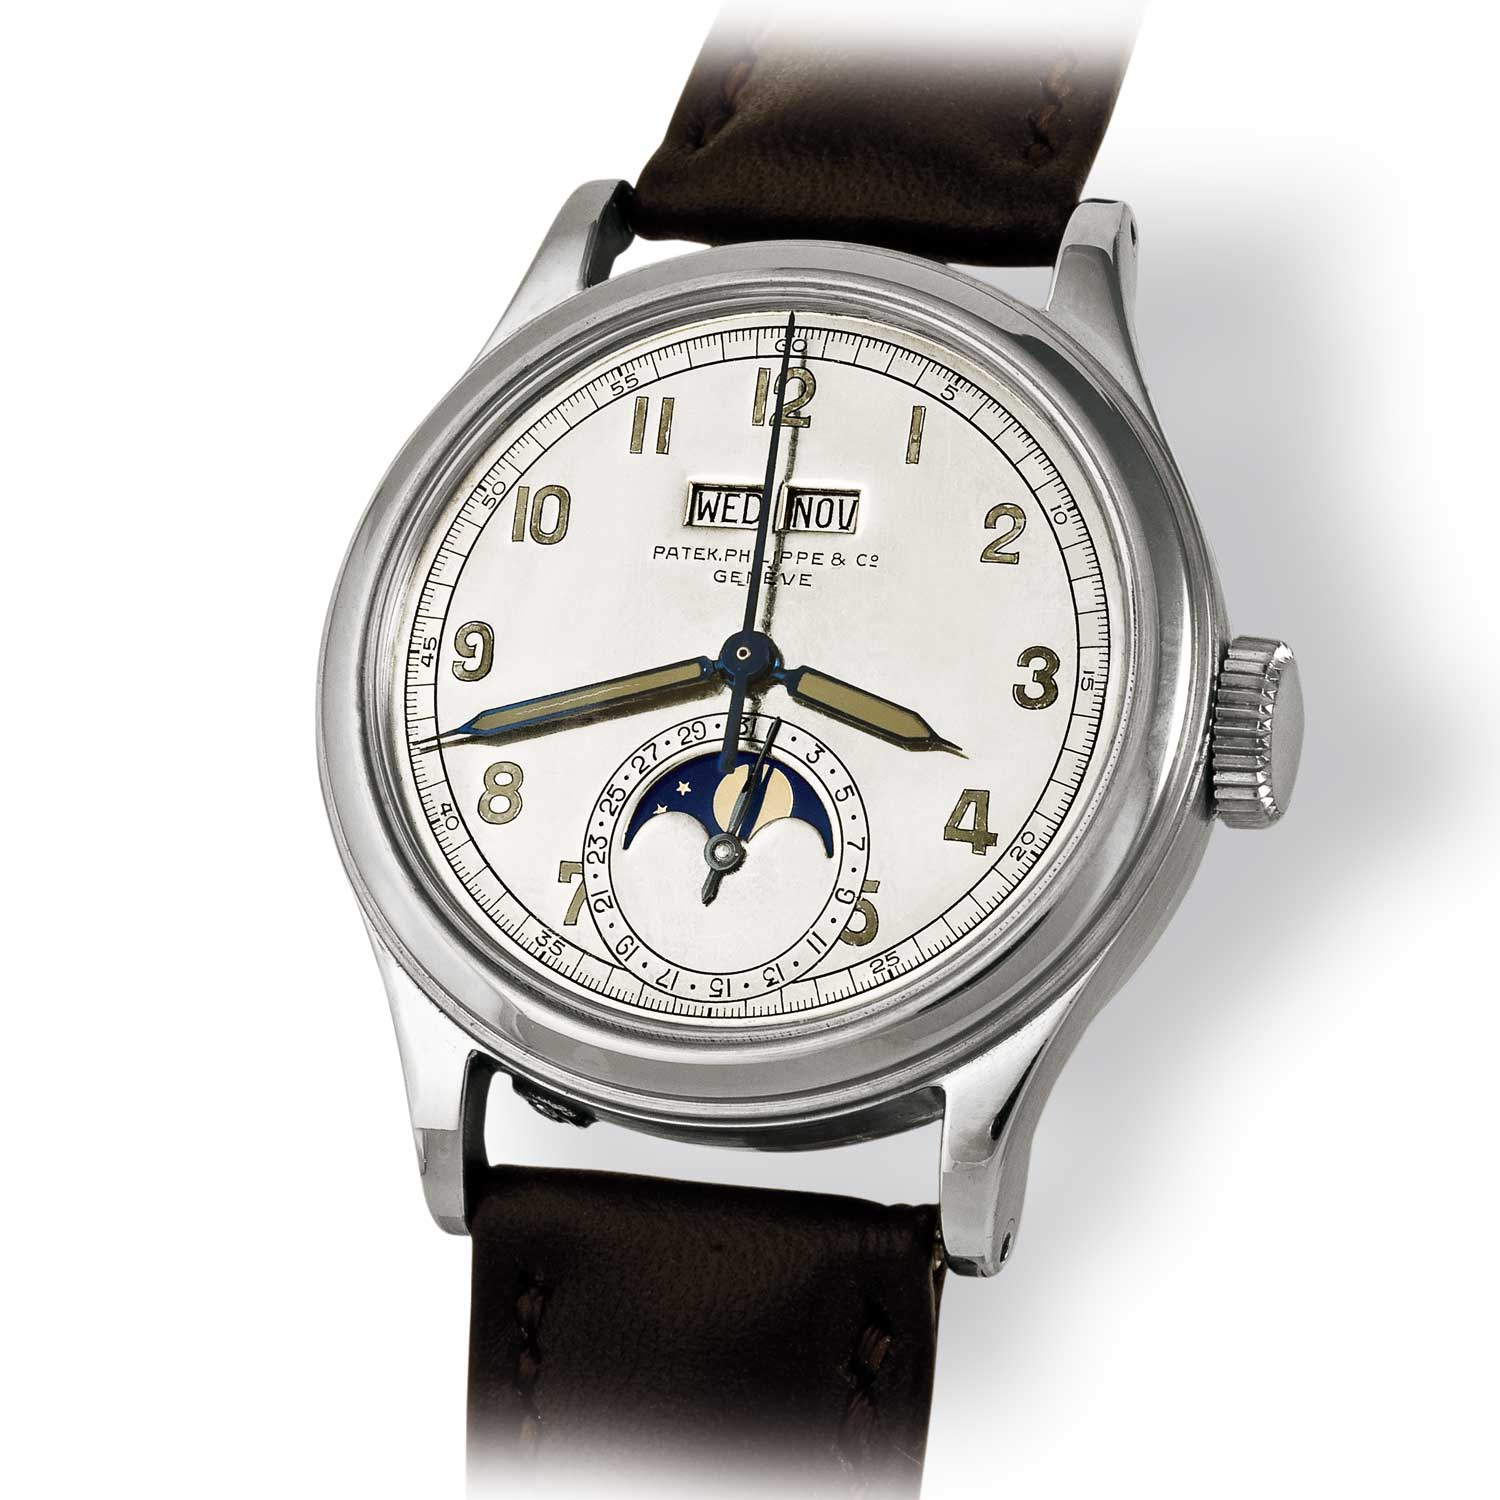 Made by Patek Philippe, a steel pièce unique ref. 1591 water-resistant perpetual calendar with luminous dial and hands made for an Indian maharaja in the 1940s (Image: John Goldberger)